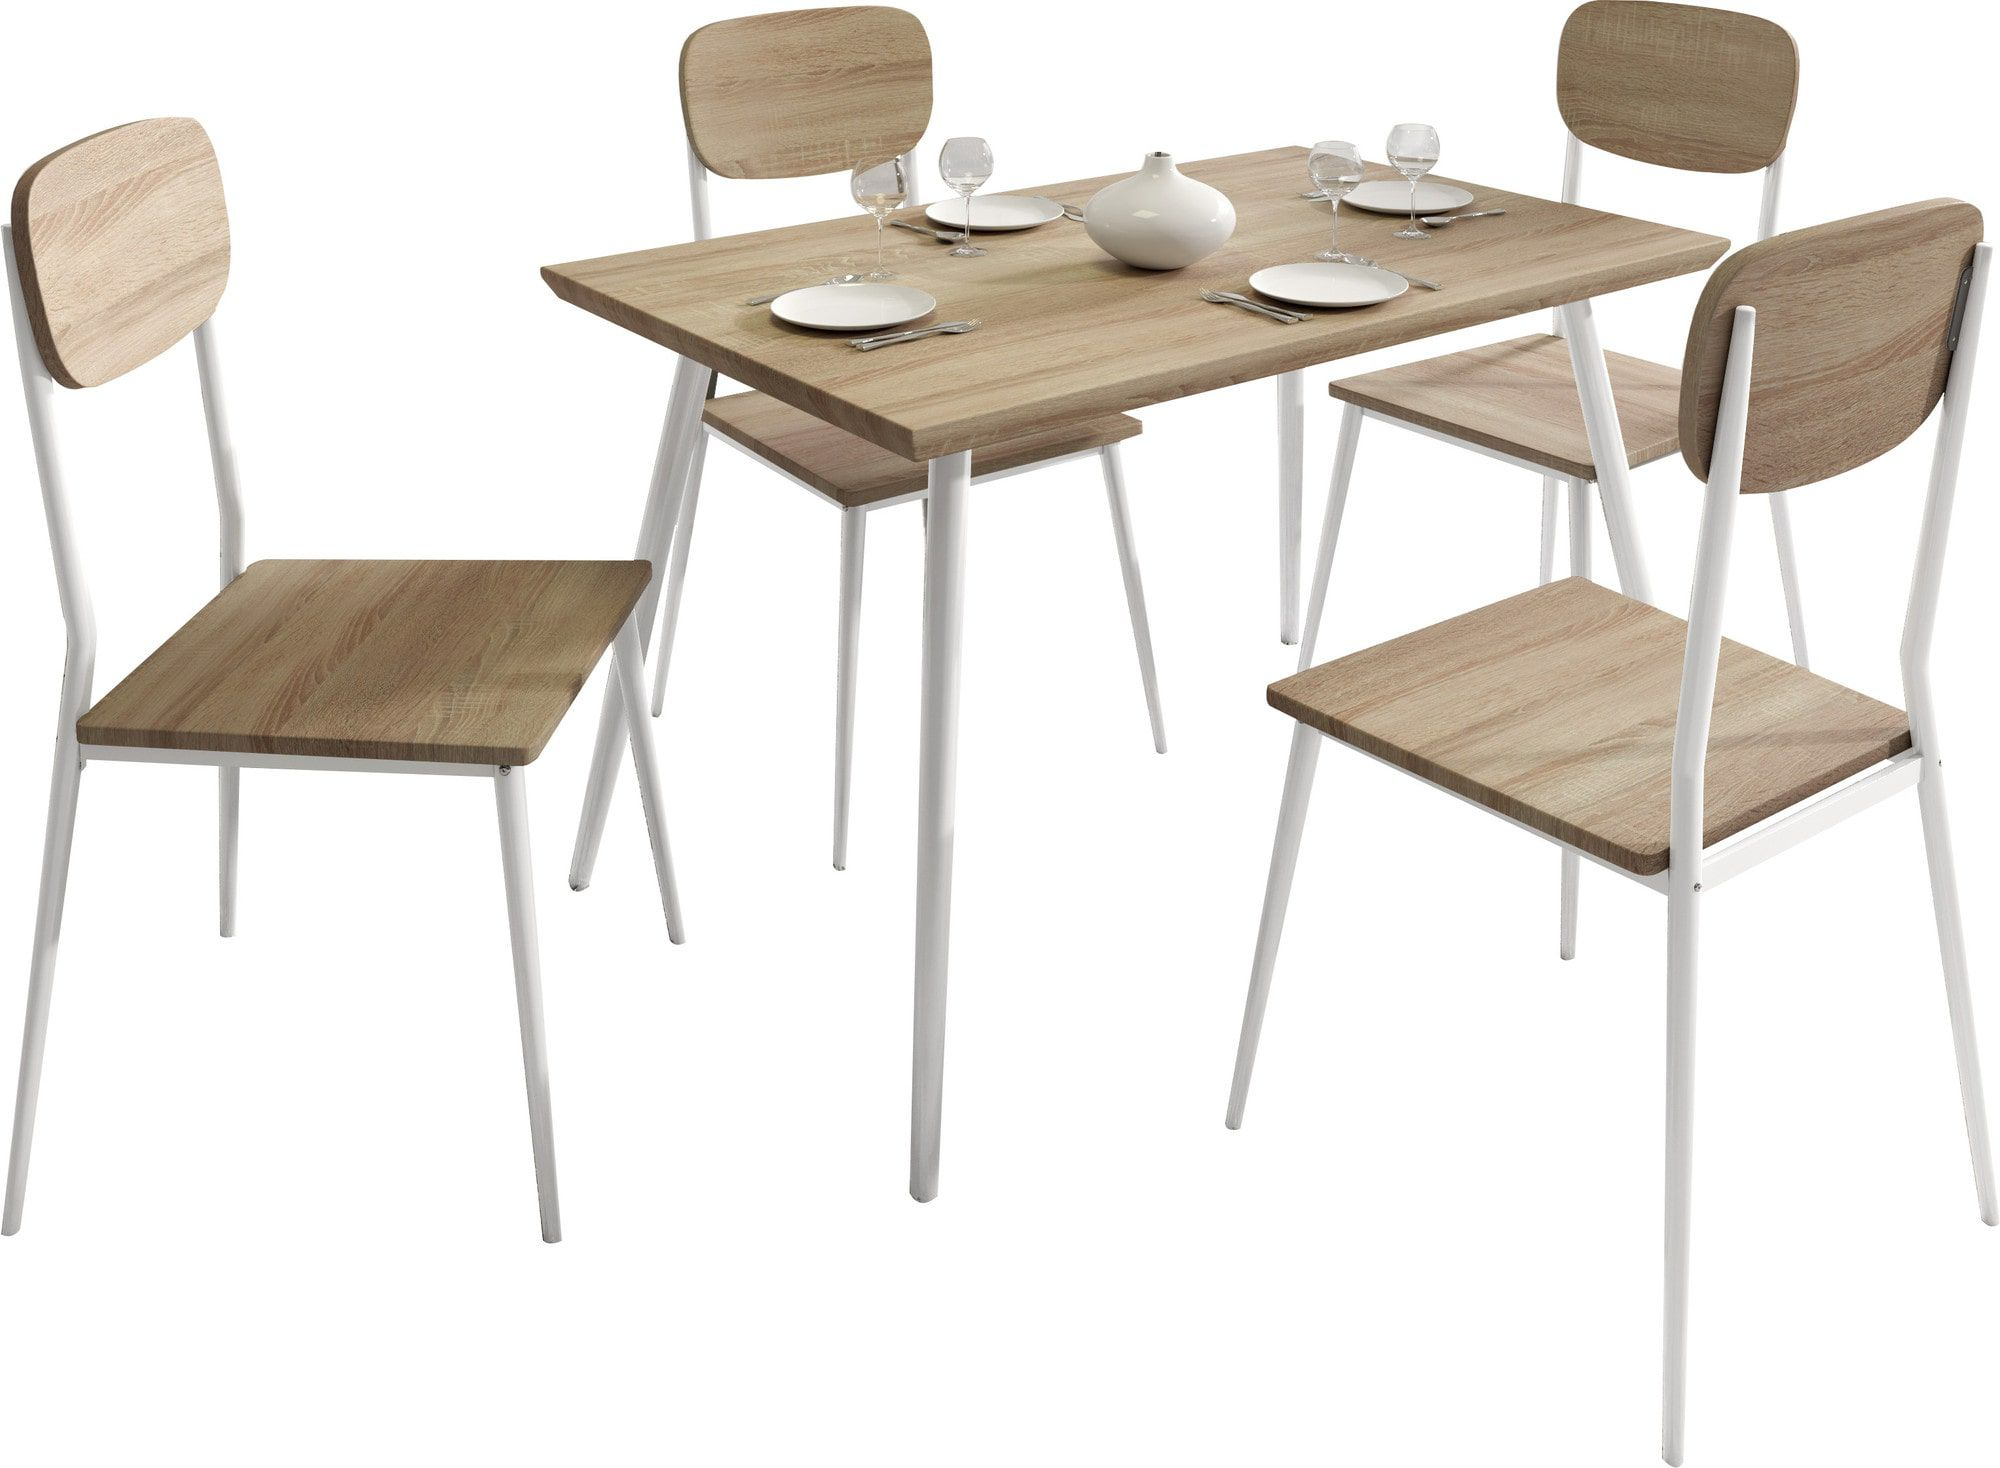 Comment assortir l ensemble table et chaise de sa salle for Ensemble table et chaises salle a manger